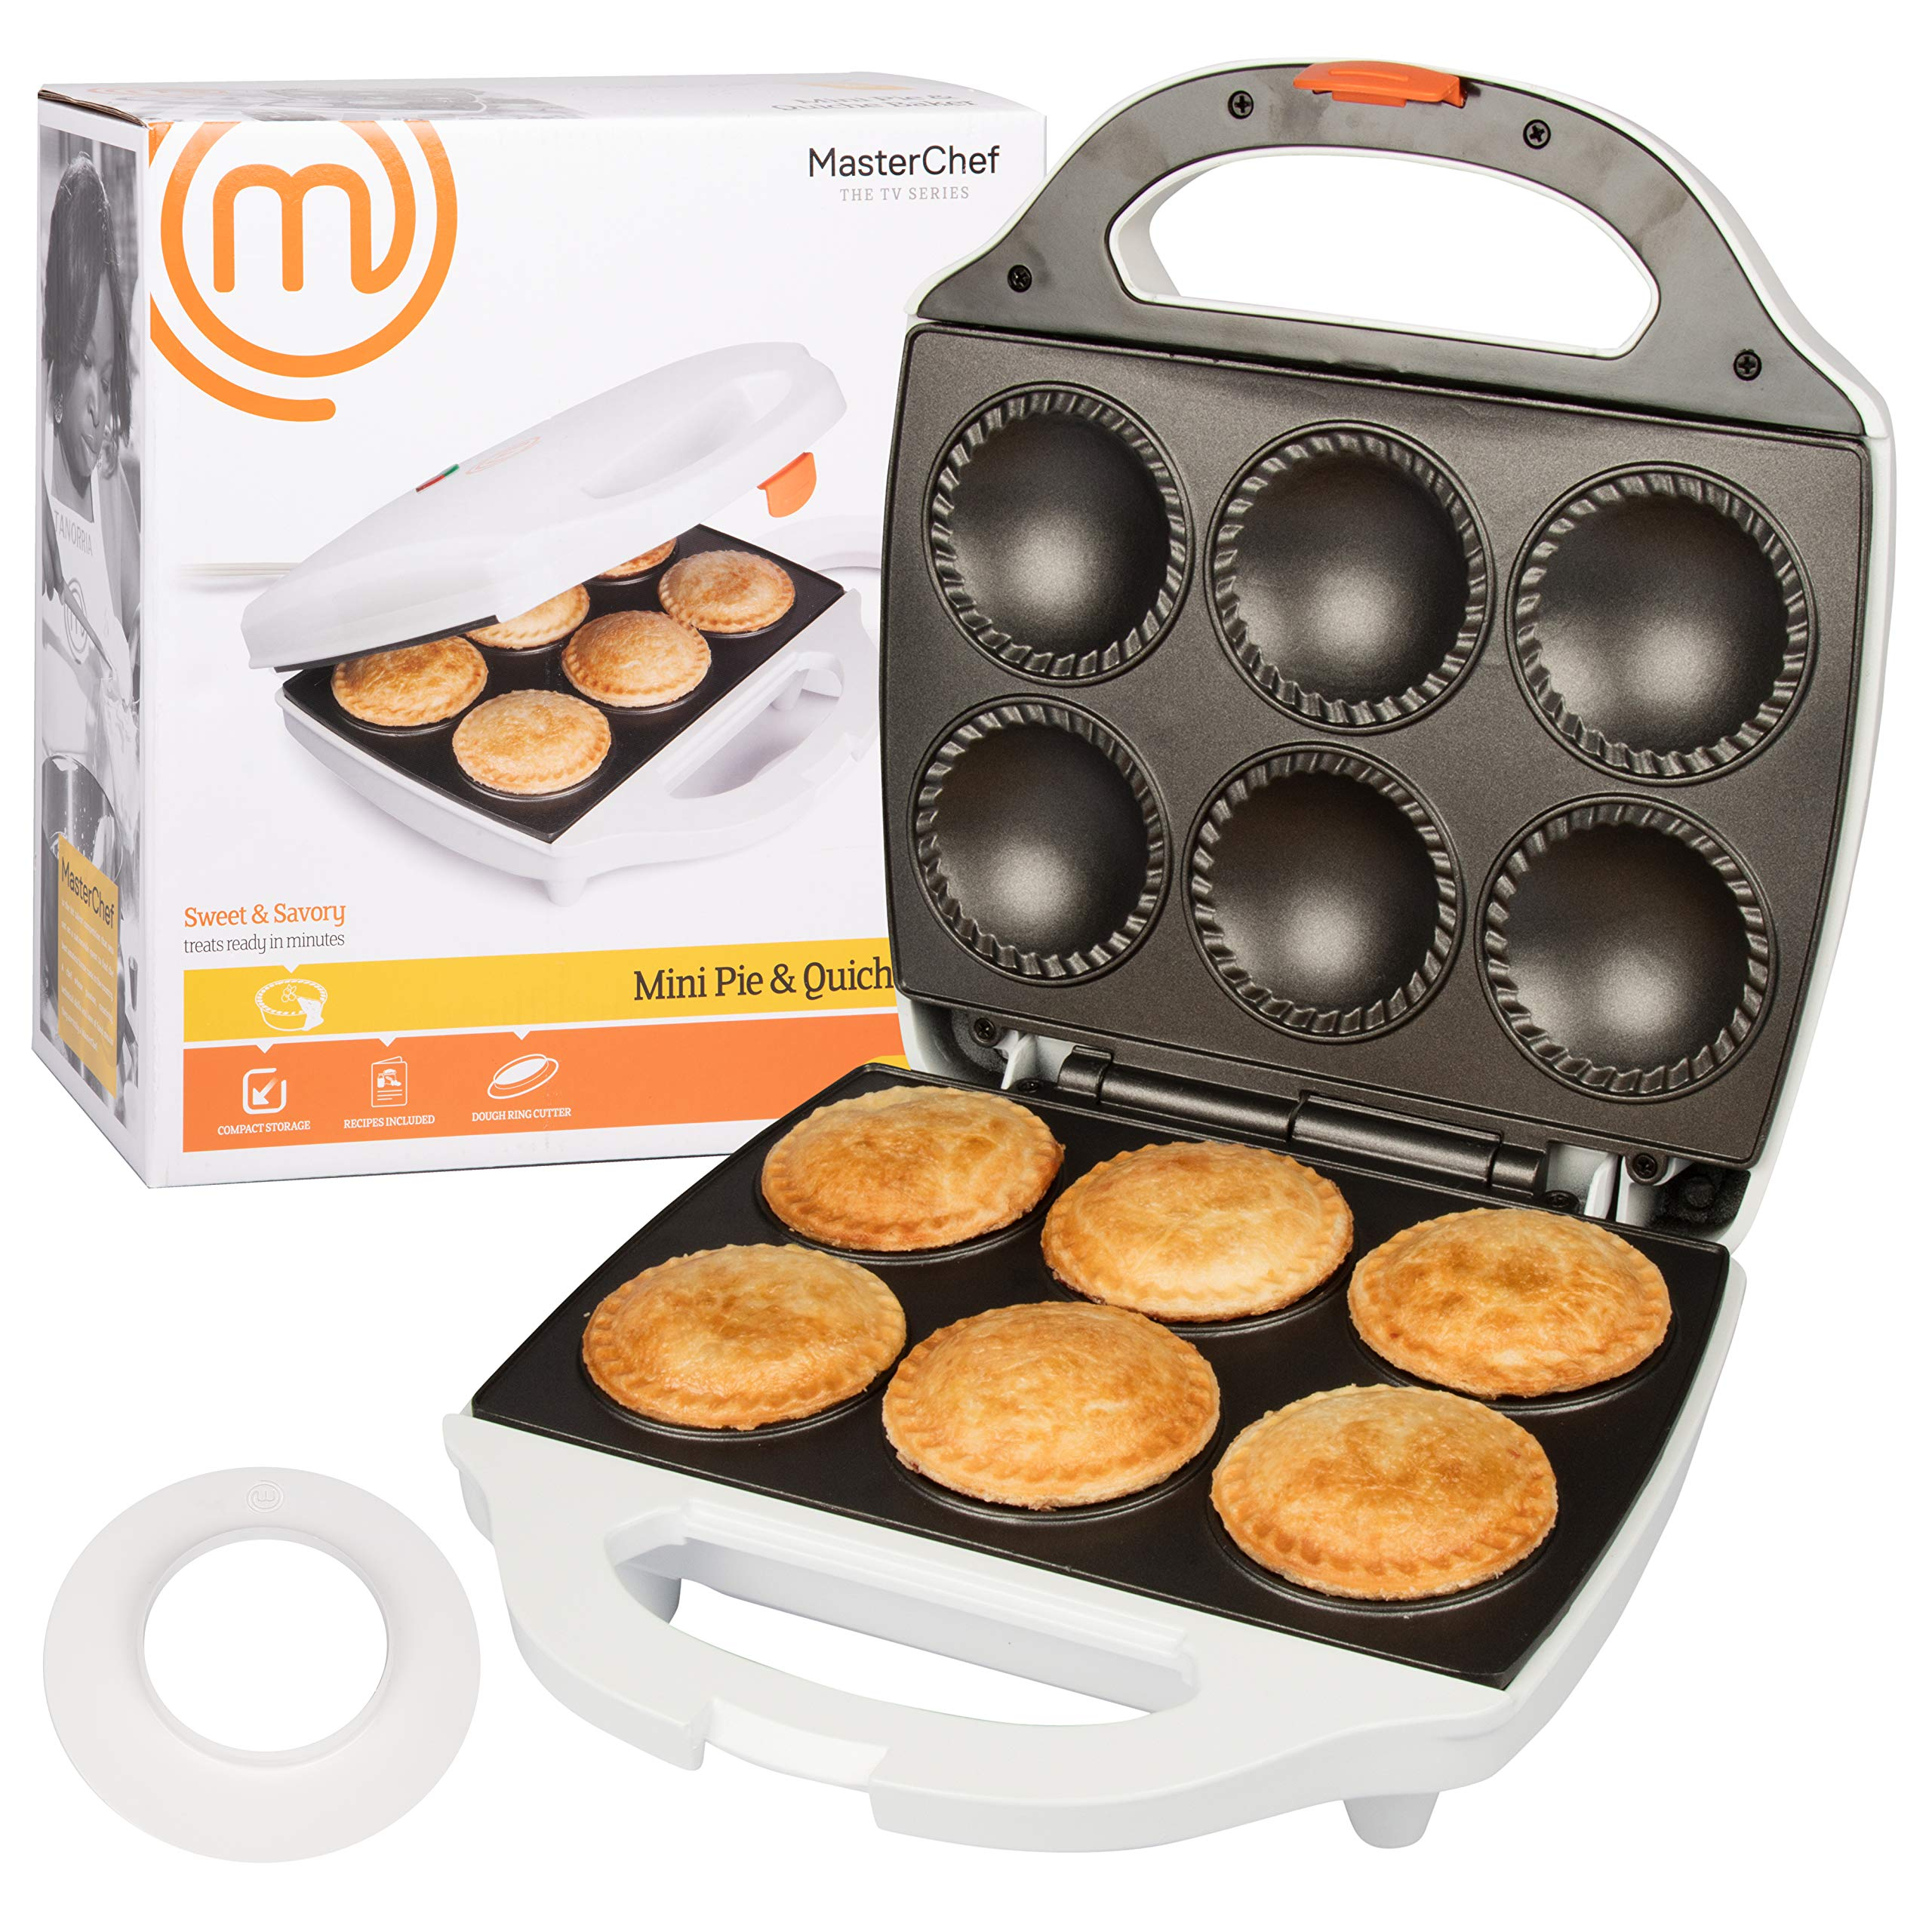 MasterChef Mini Pie and Quiche Maker- Pie Baker Cooks 6 Small Pies and Quiches in Minutes- Non-stick Cooker w Dough Cutting Circle for Easy Dough Measurement